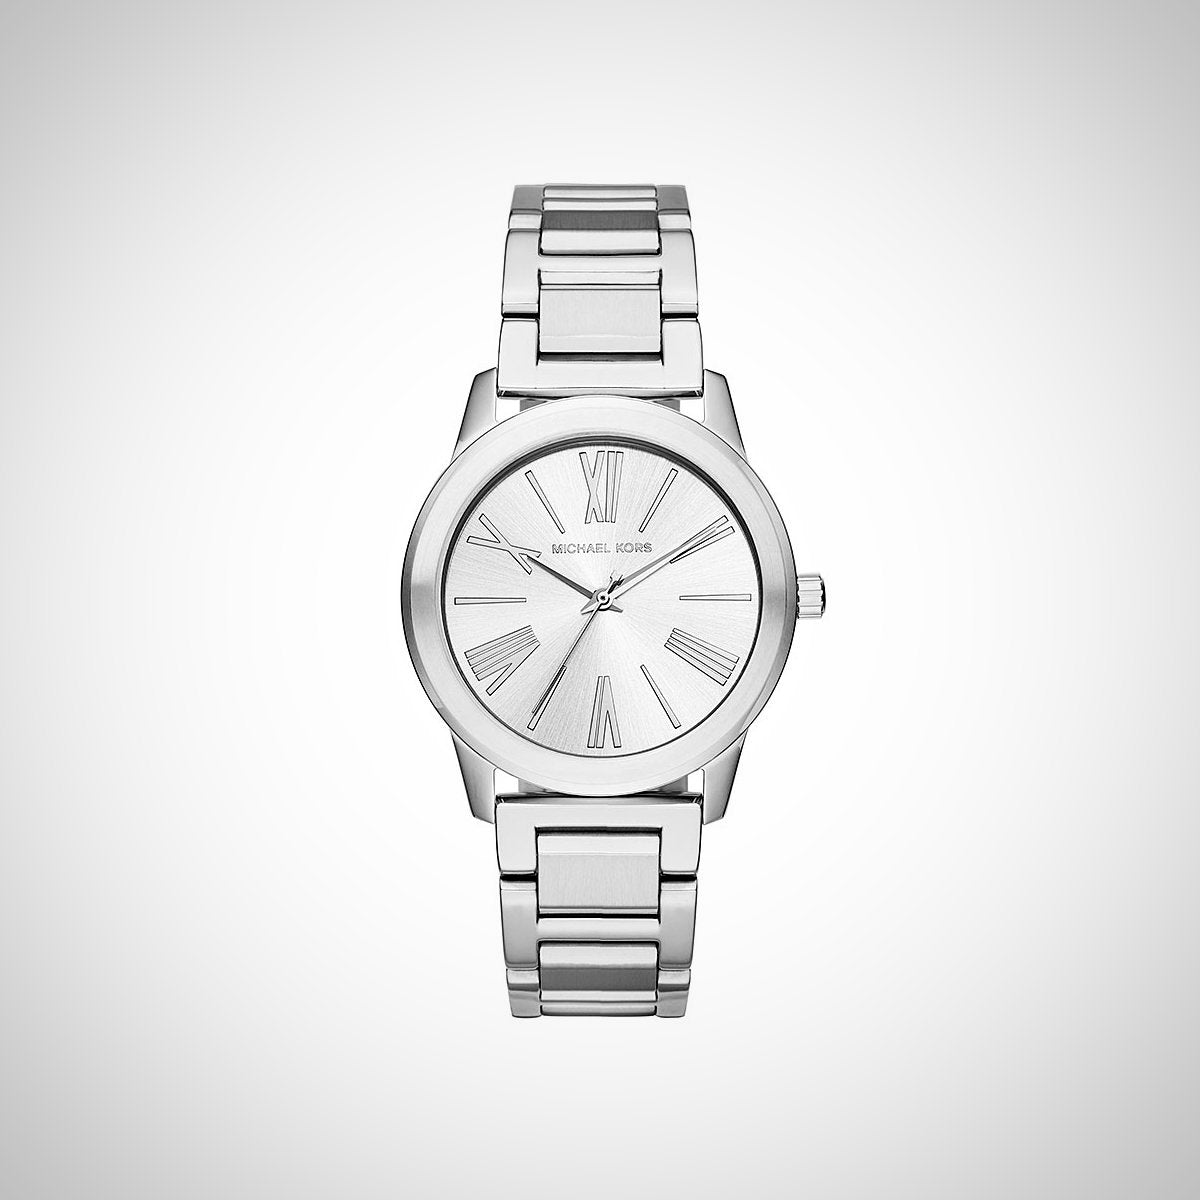 Michael Kors MK3489 Hartman Ladies' Silver Stainless Steel Case Watch